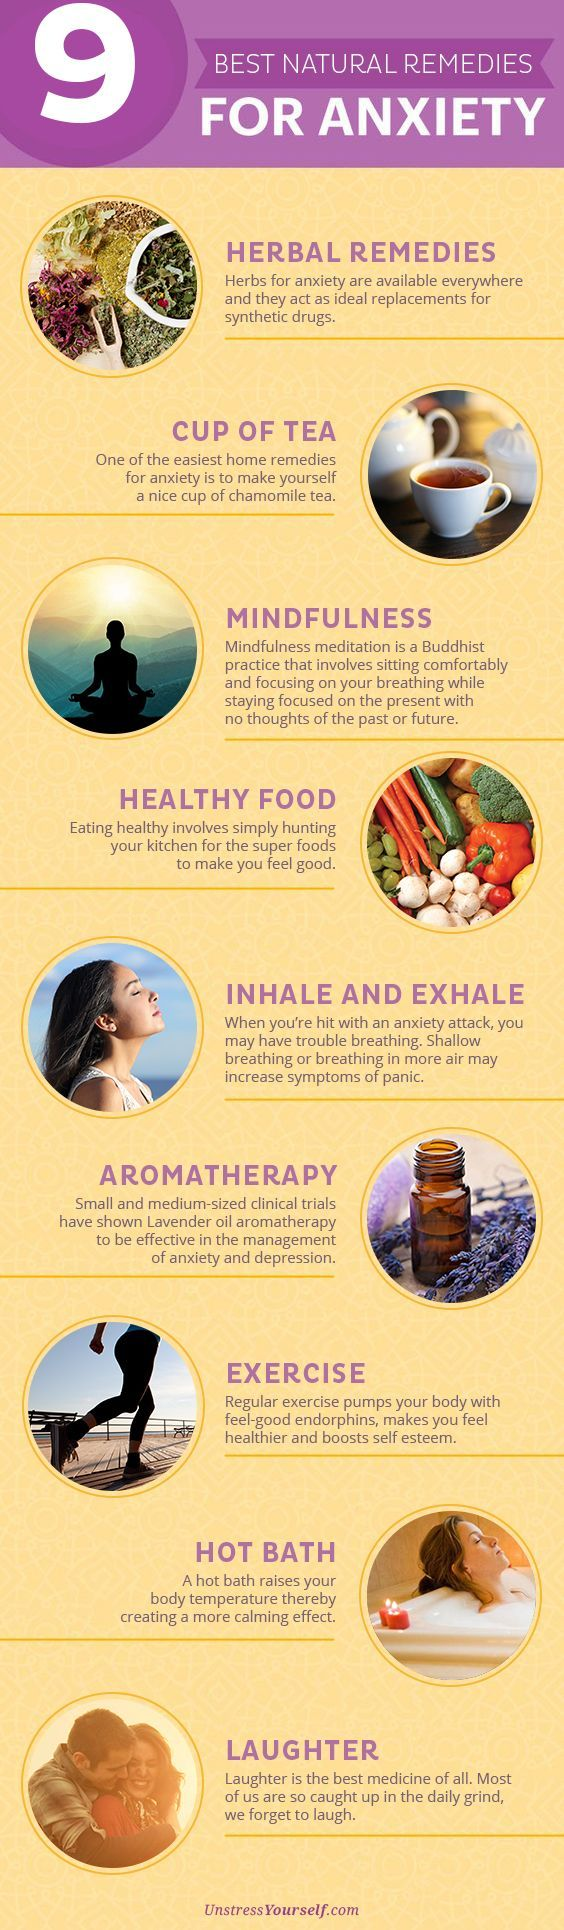 Best Natural Remedies for Anxiety I've recently started drinking Kava tea. I found it at local organic/health food store.